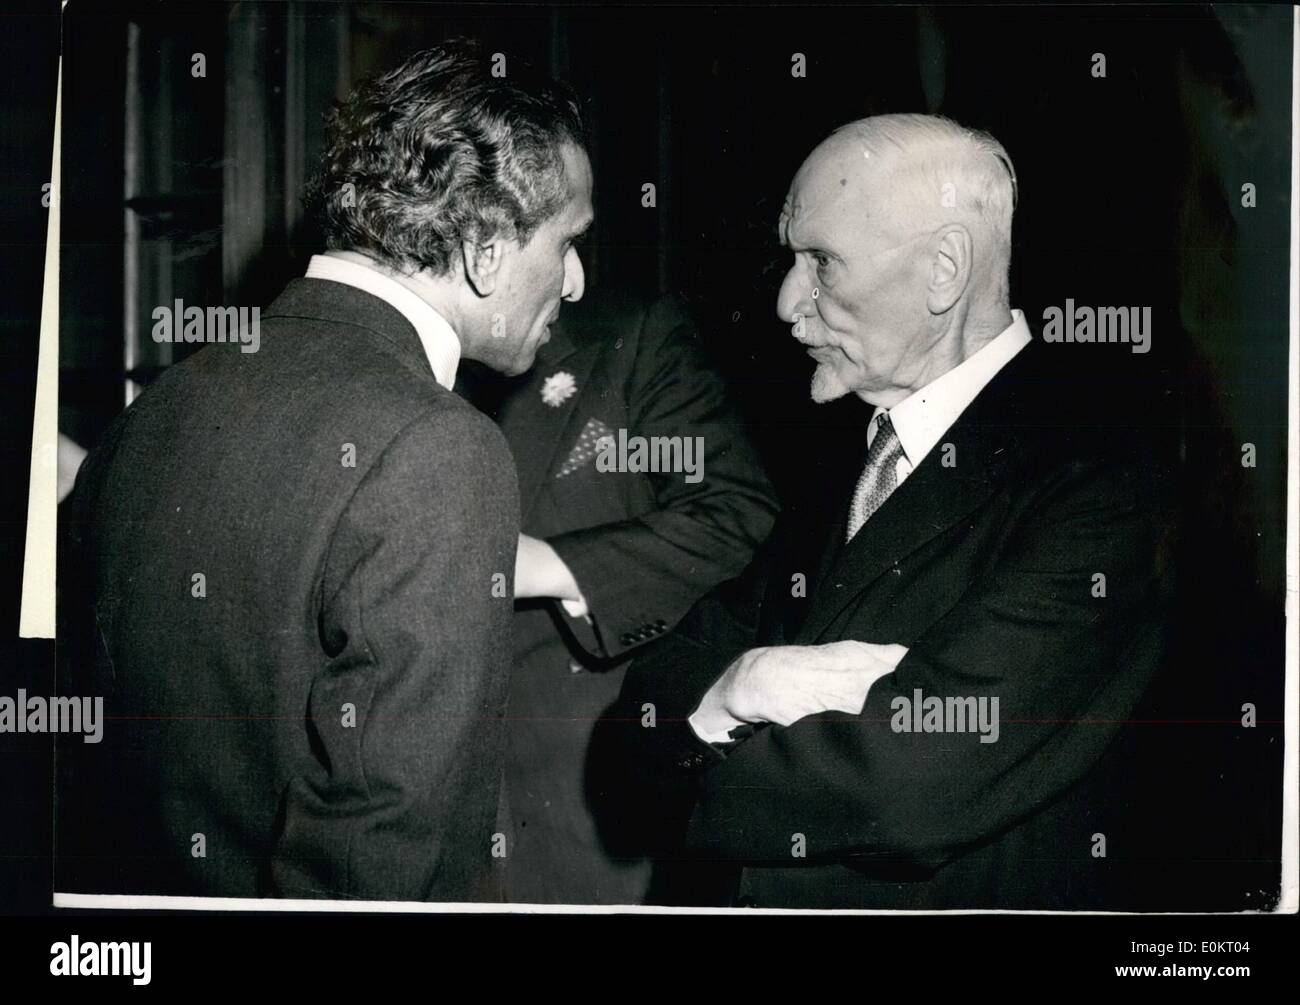 Nov. 11, 1949 - A Spot of Serious Conversation at the Reception... General Smuts and Mr. Khrisna Menon... hoto Shows: - Stock Image